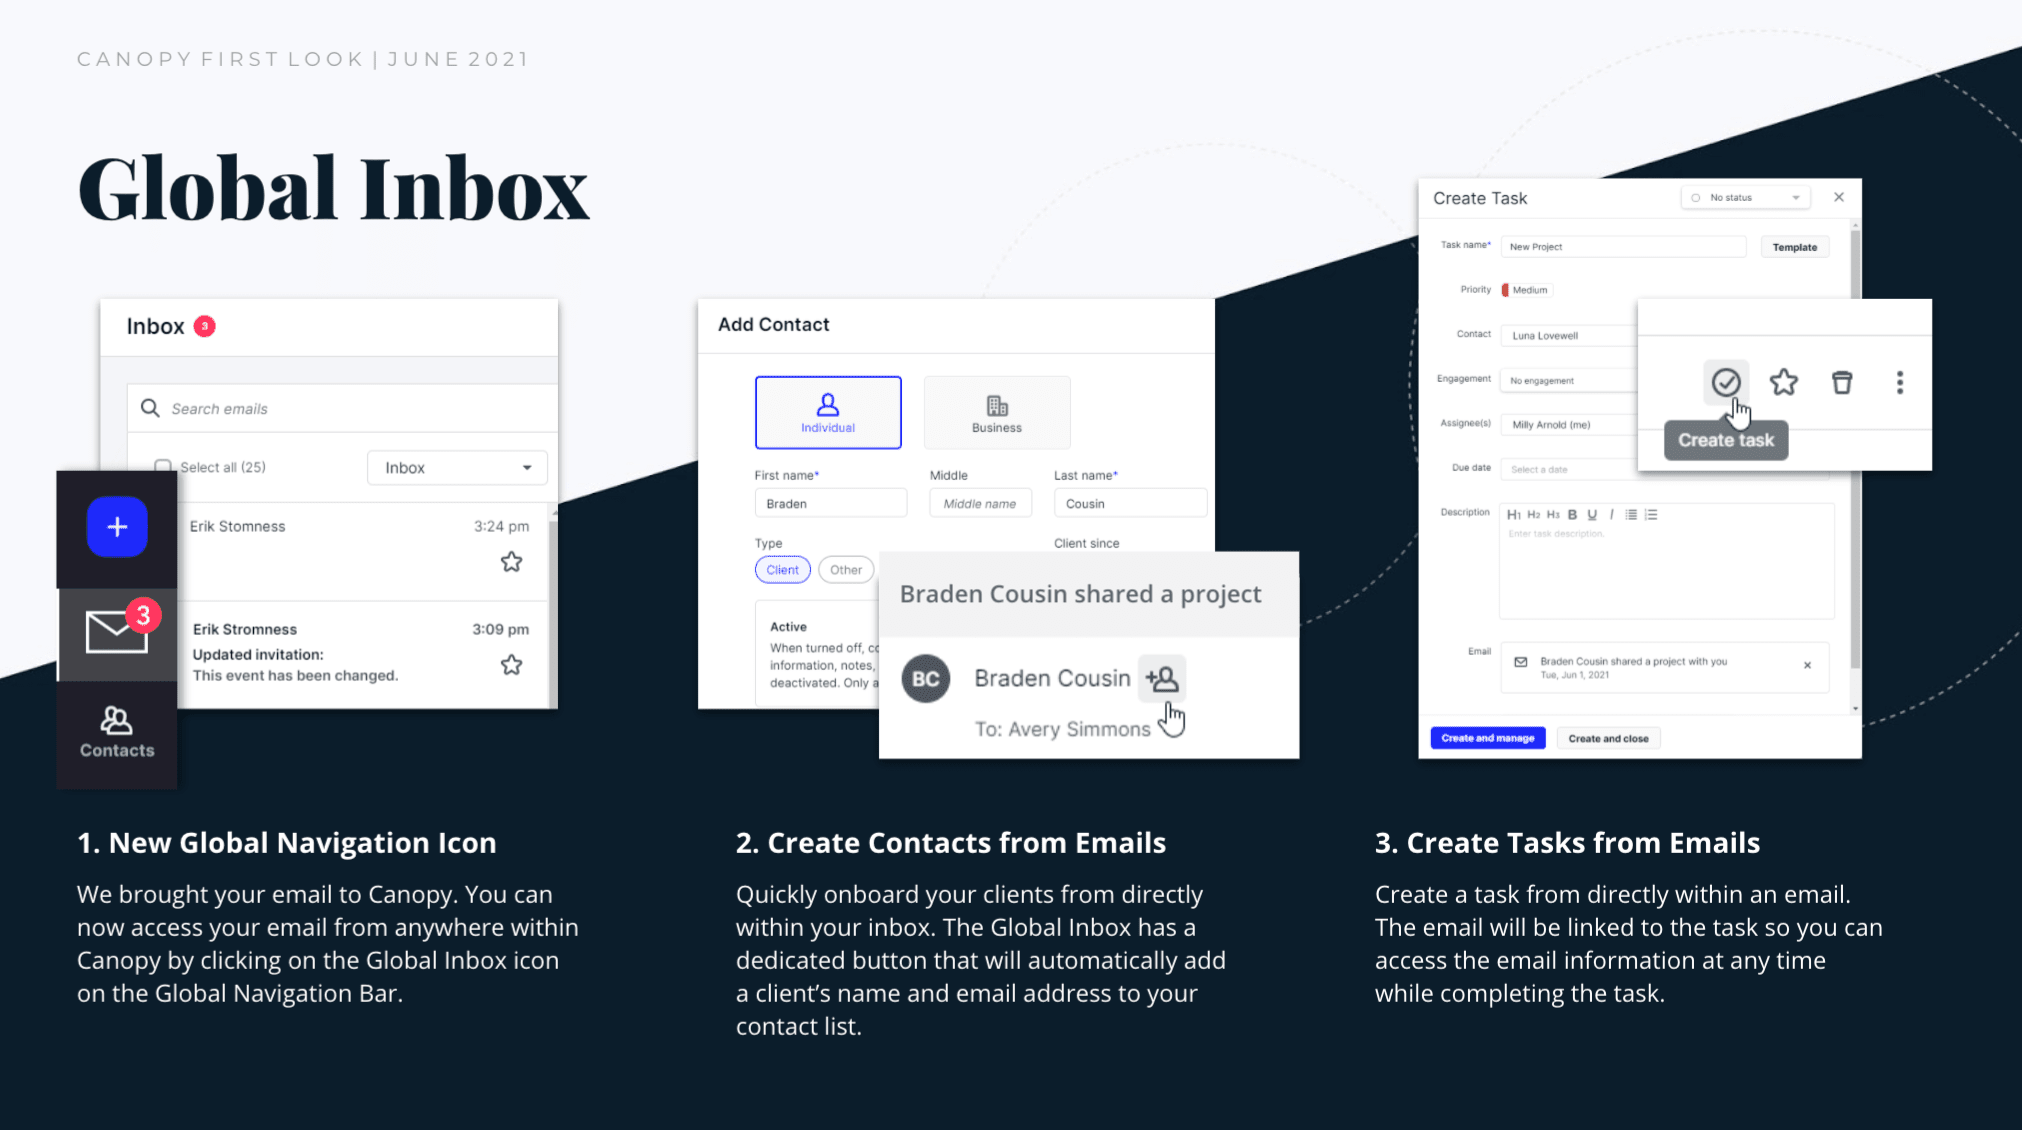 June First Look: Here Are the New Features Offered on Canopy | Canopy